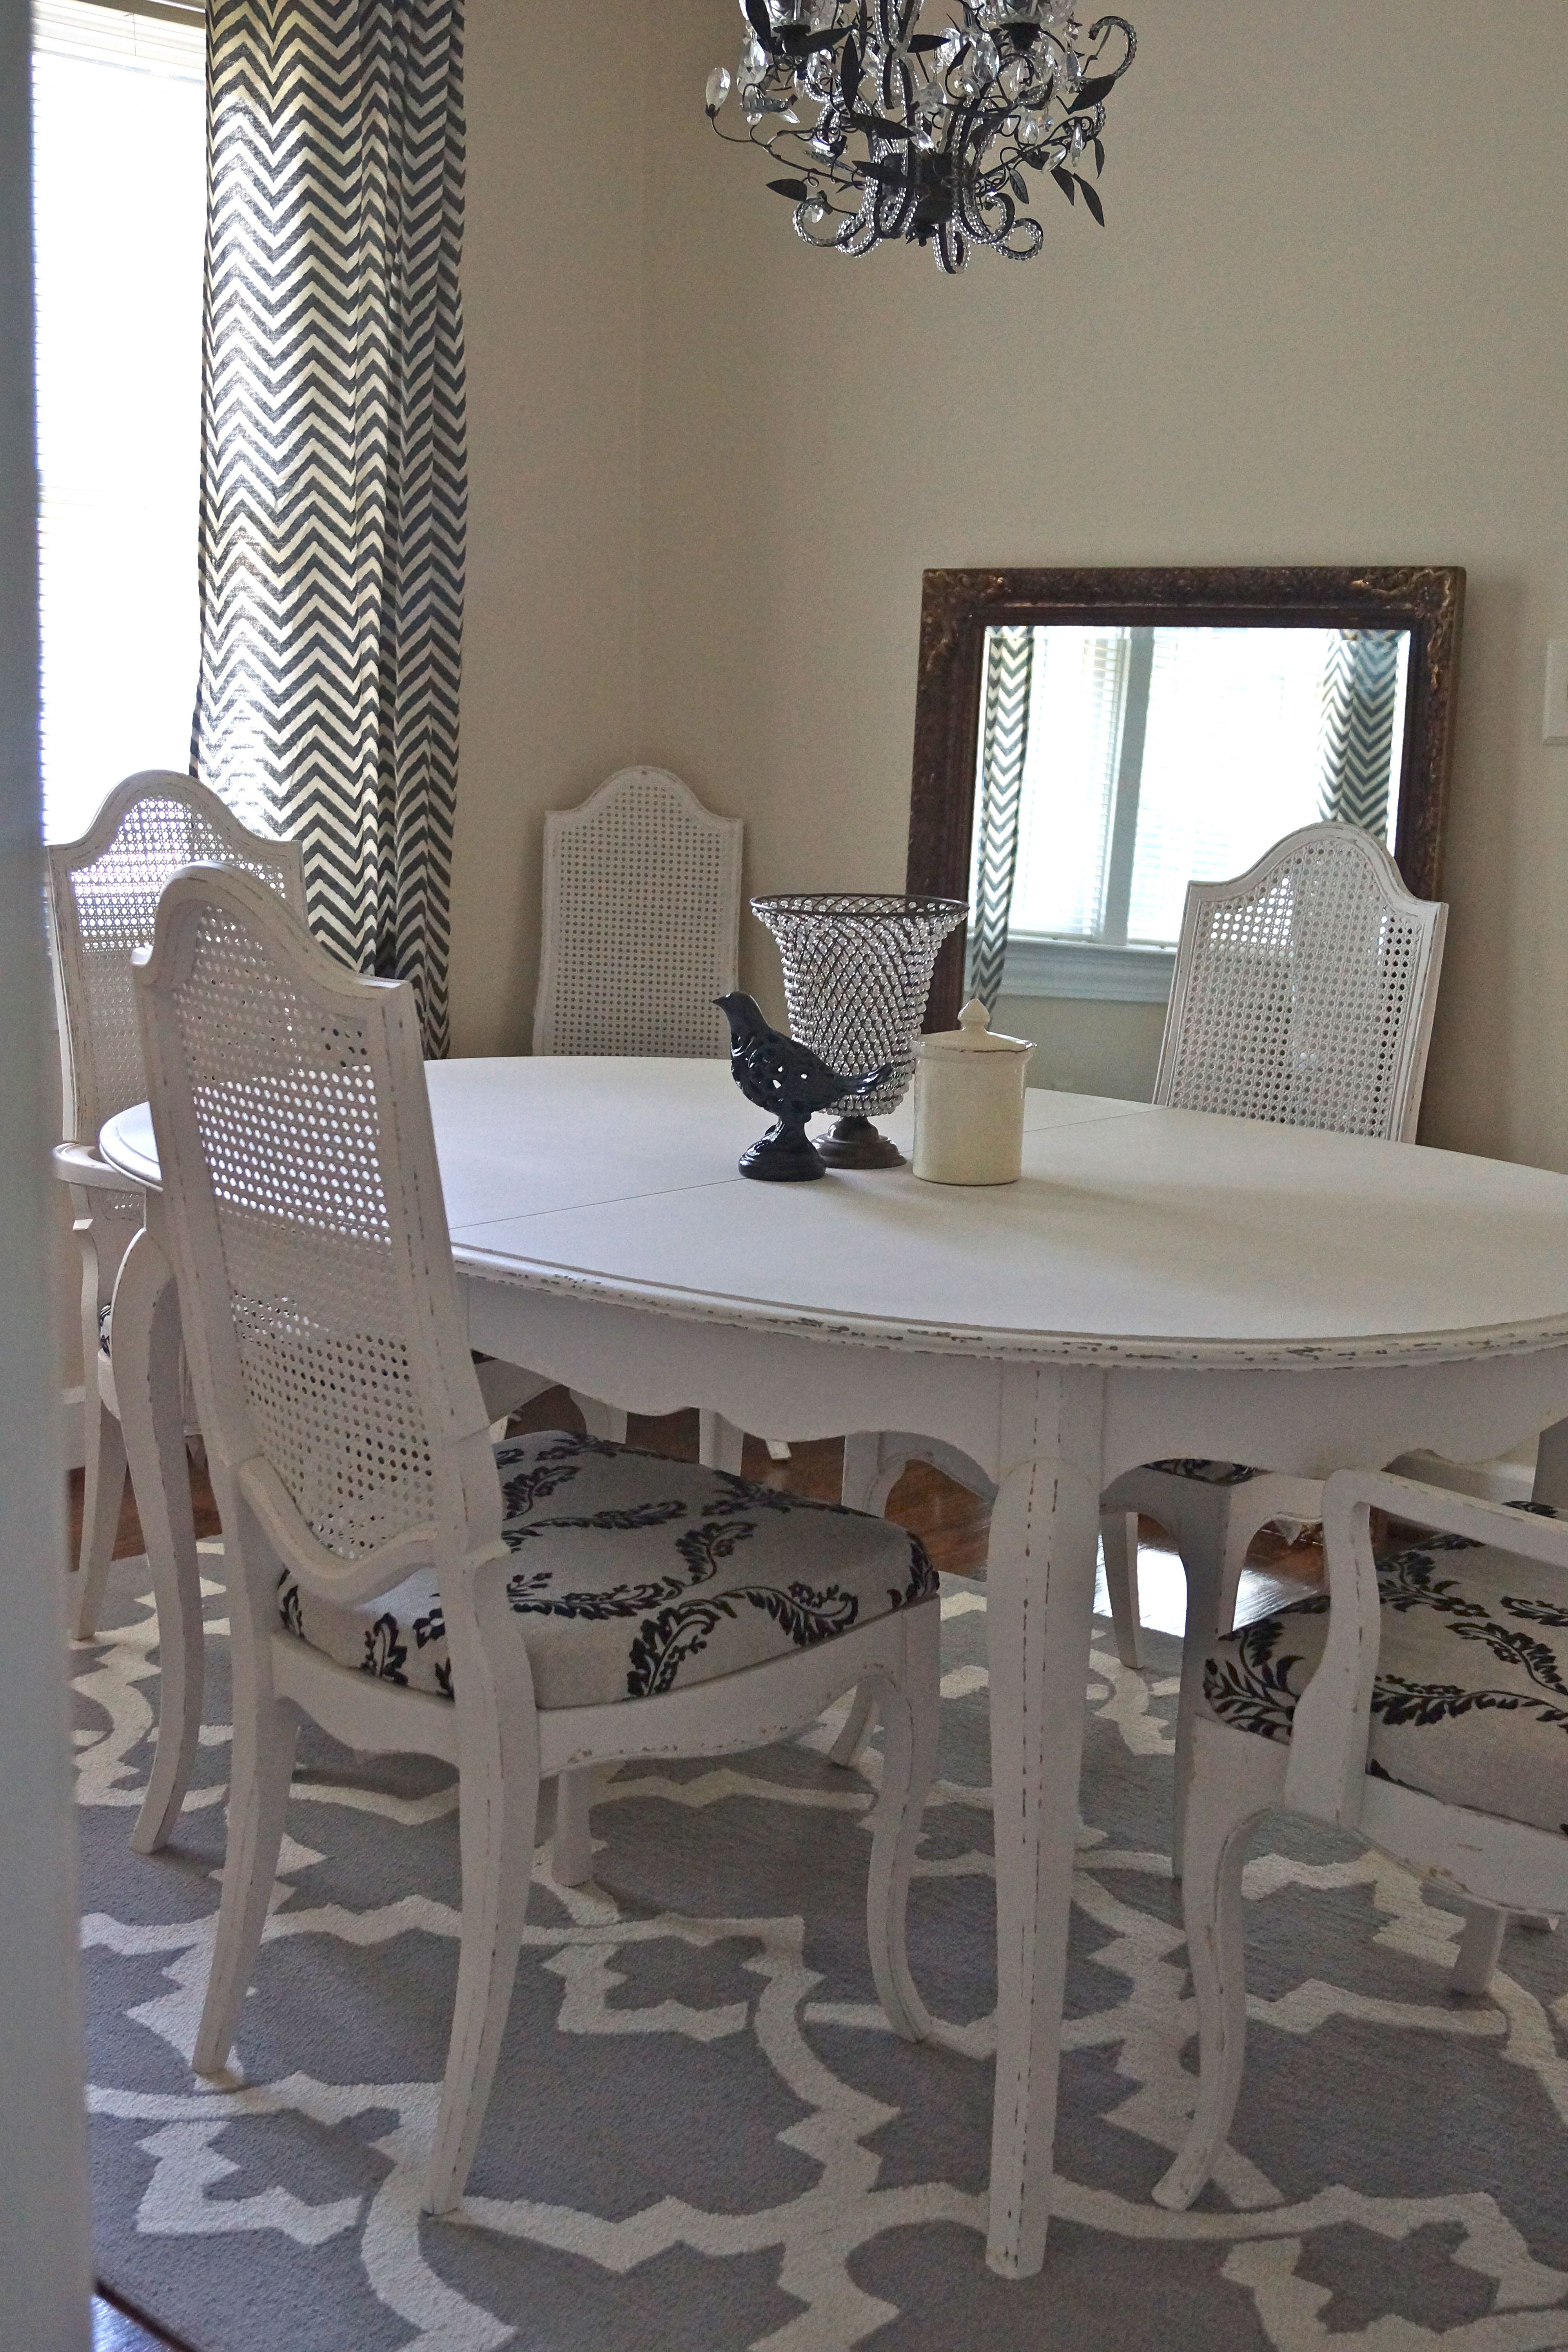 Vintage Drexel Heritage French Provincial Dining Room Table And Chairs